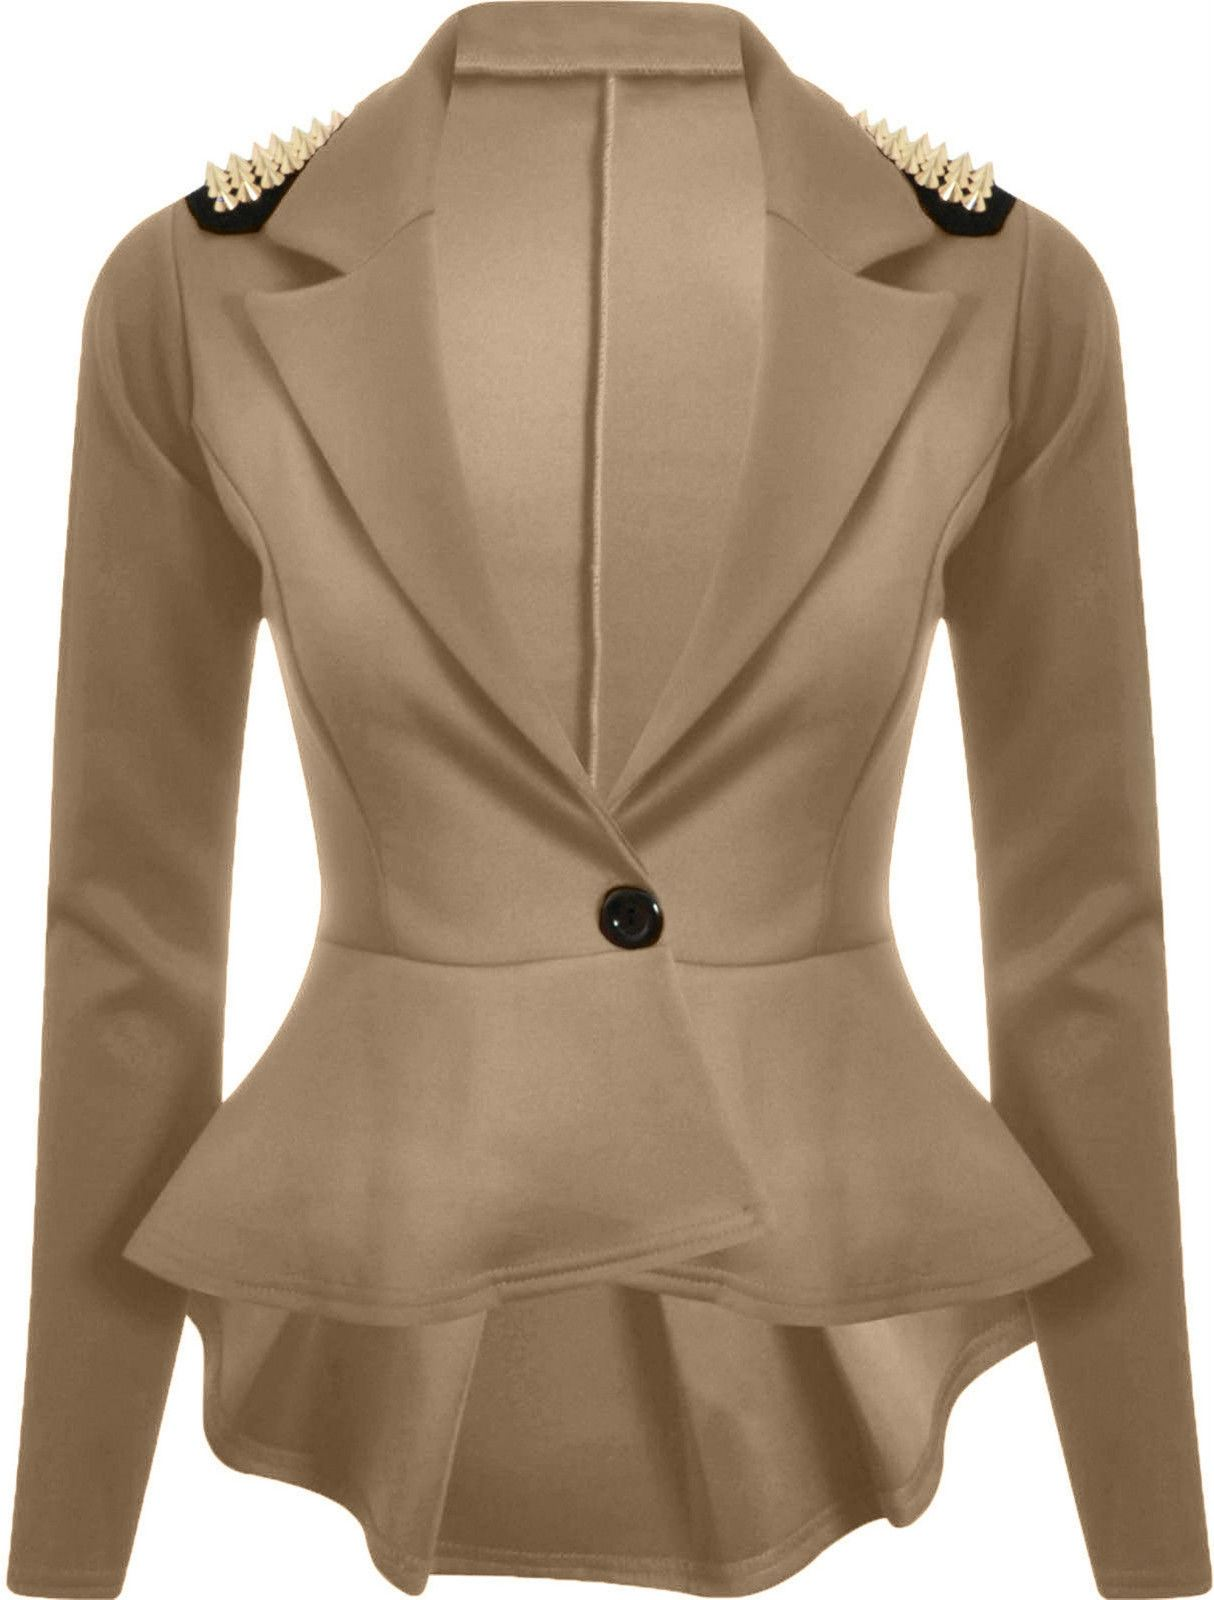 Blazer Jacket Womens